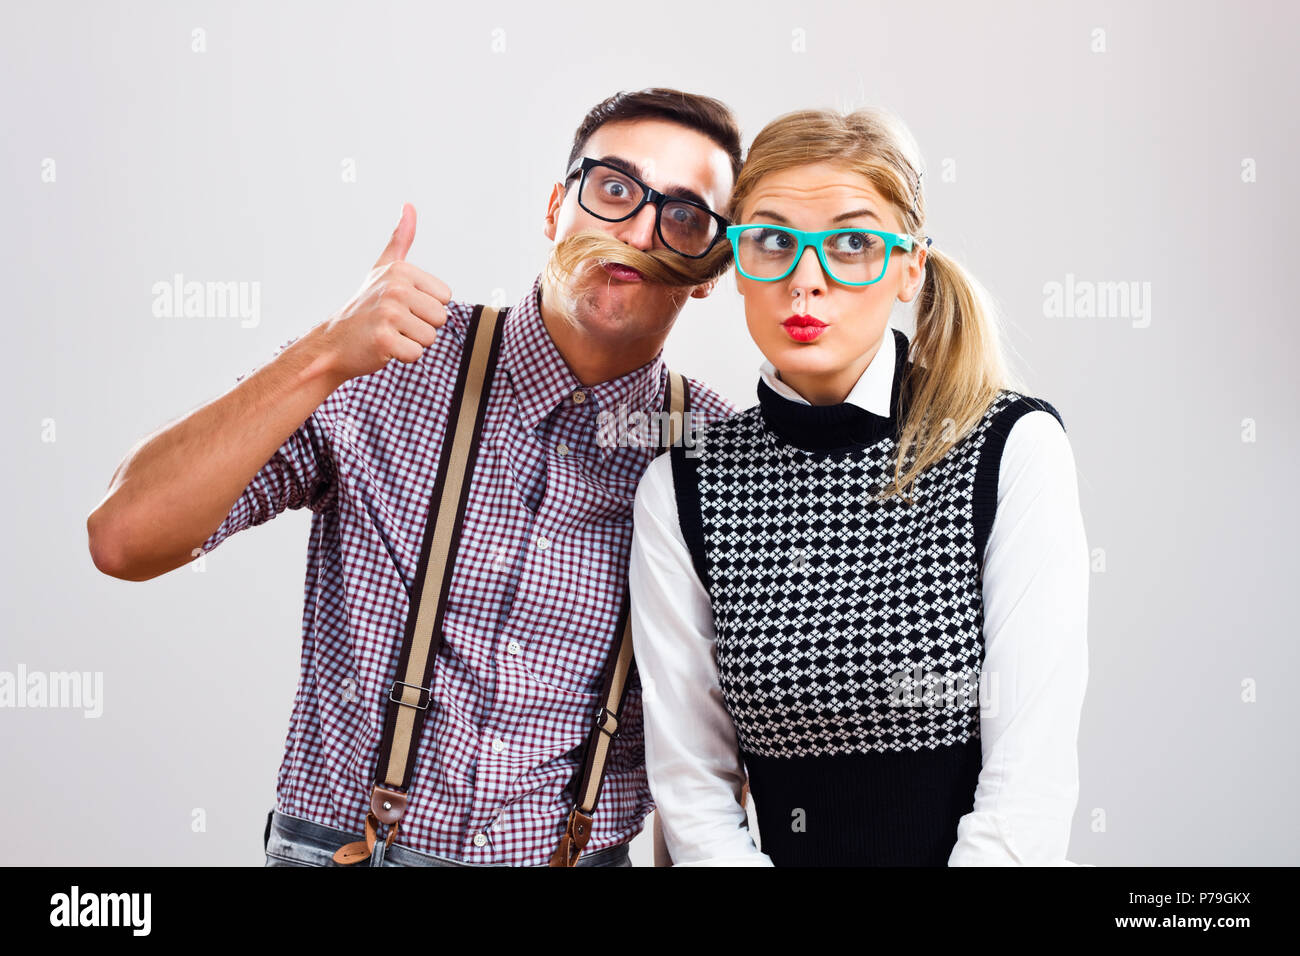 Portrait of two cute nerds having fun. - Stock Image